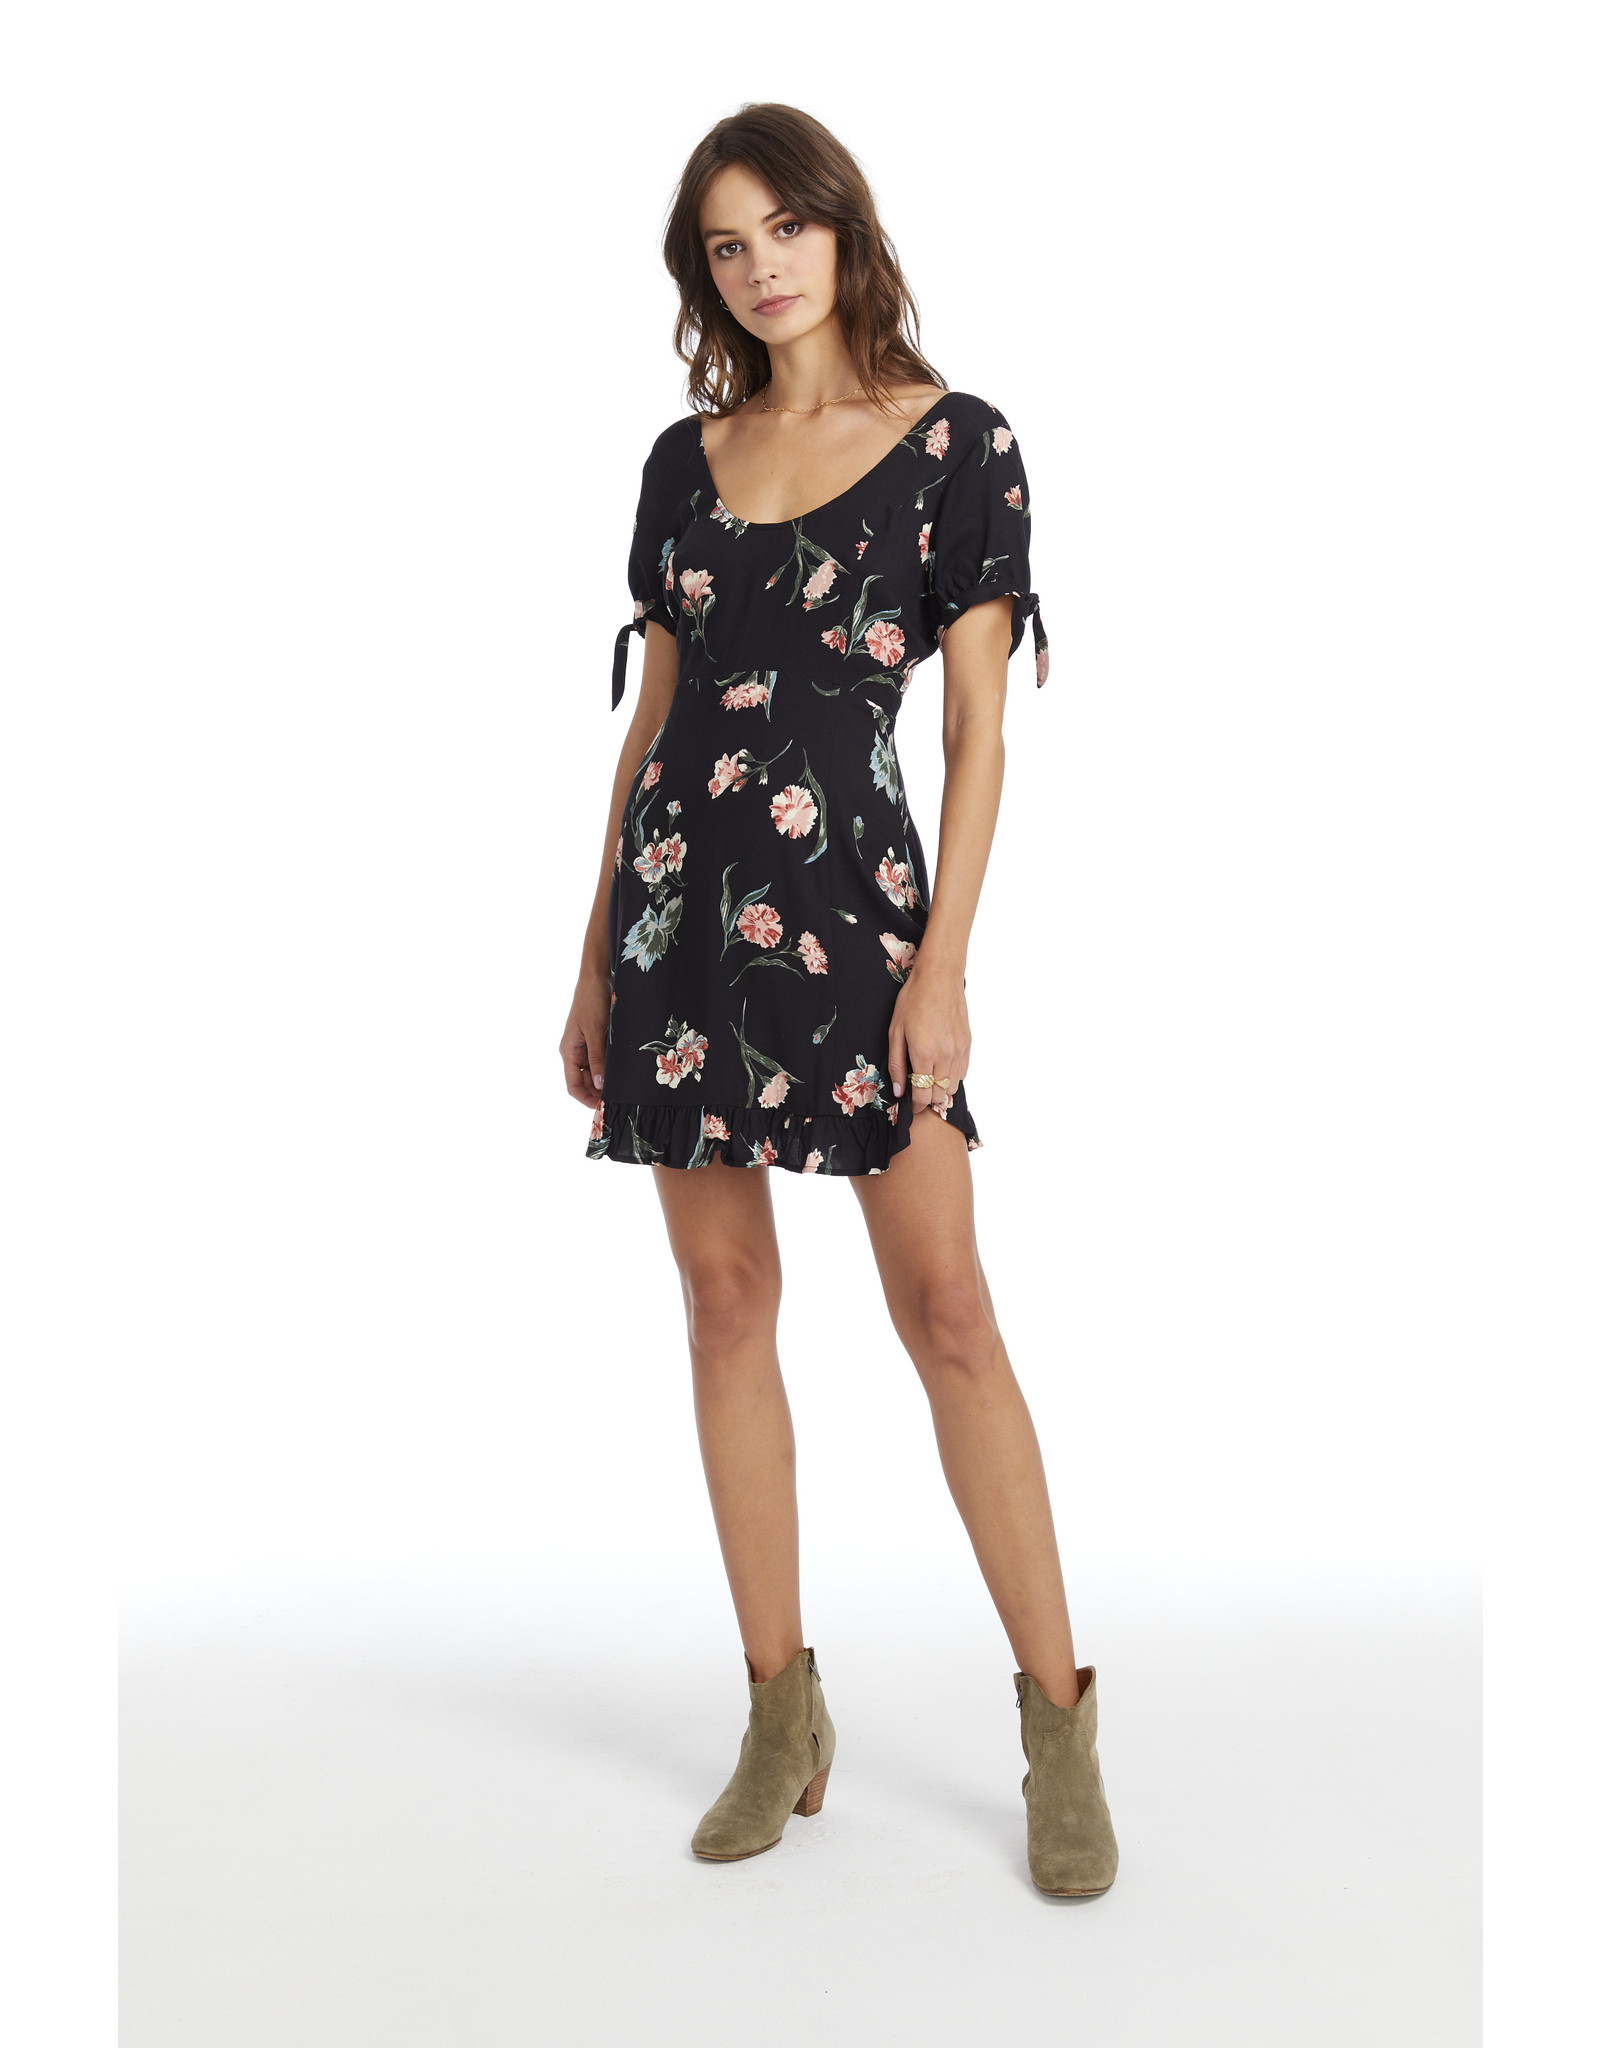 Saltwater Luxe Saltwater Luxe - Floral Mini Dress